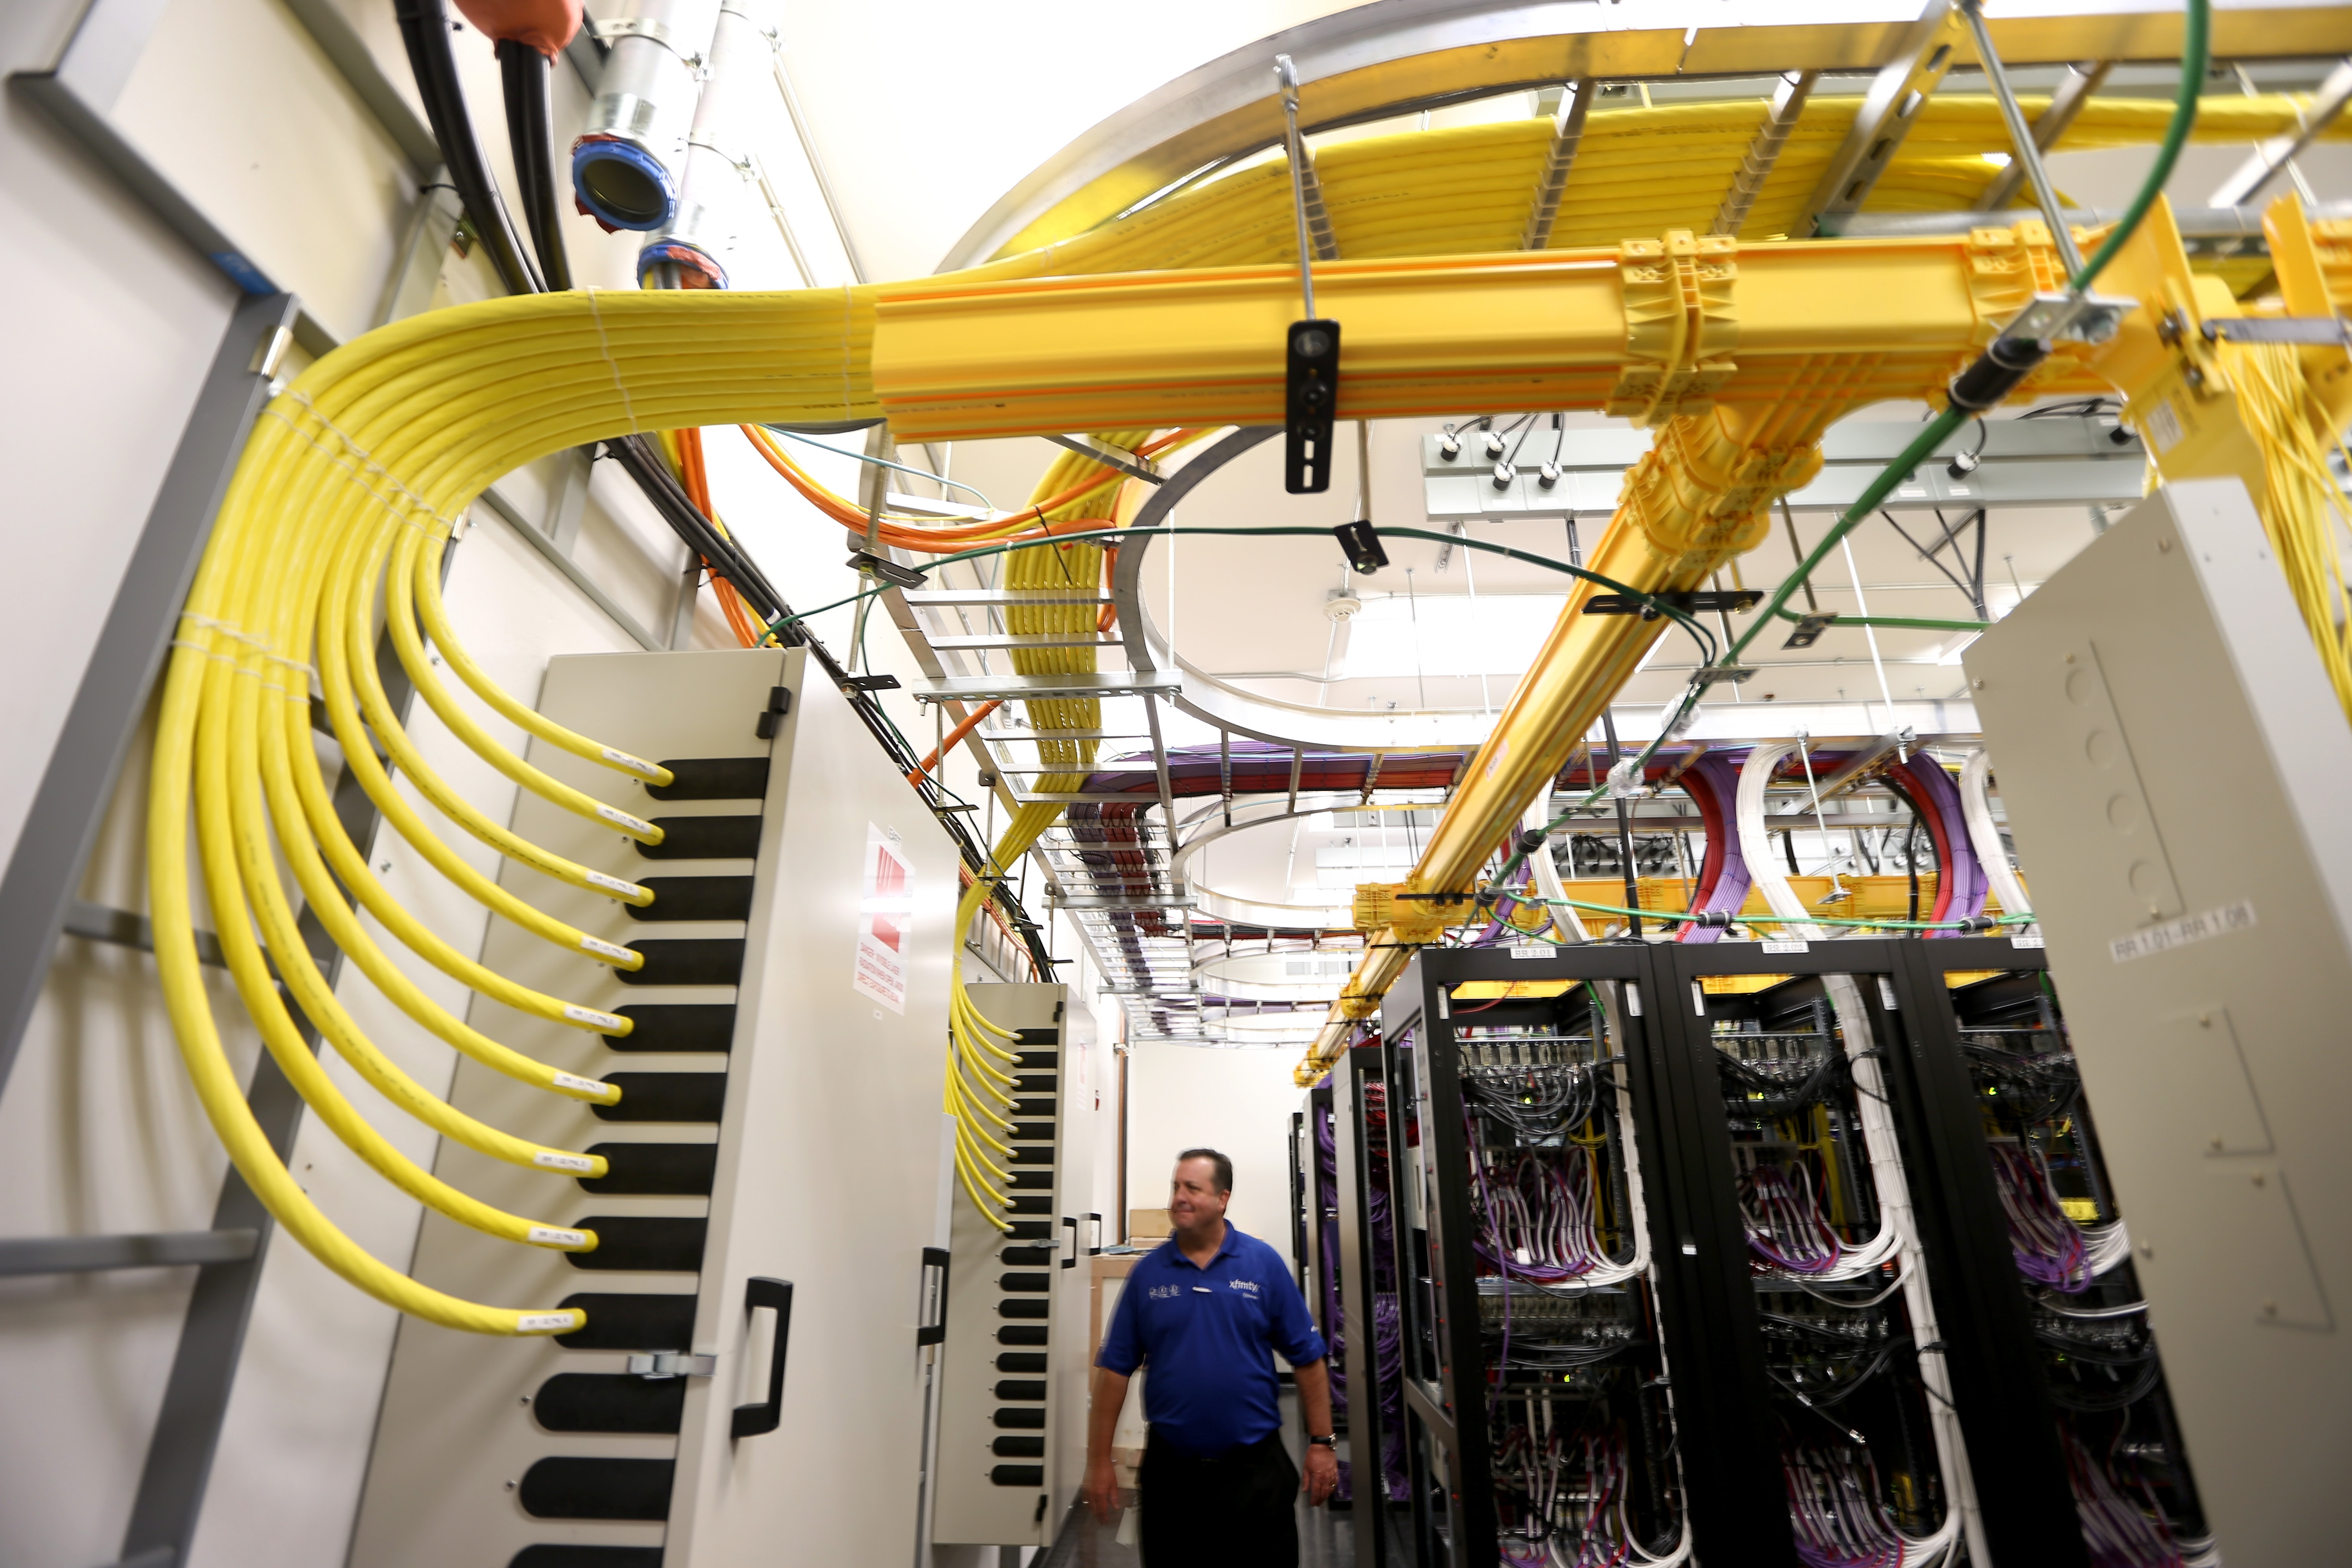 Brian Hunt,  Director Engineering, South Florida, stands among the cables and routers at a Comcast distribution center where the Comcast regional video, high speed data and voice are piped out to customers on February 13, 2014 in Miramar, Fla.